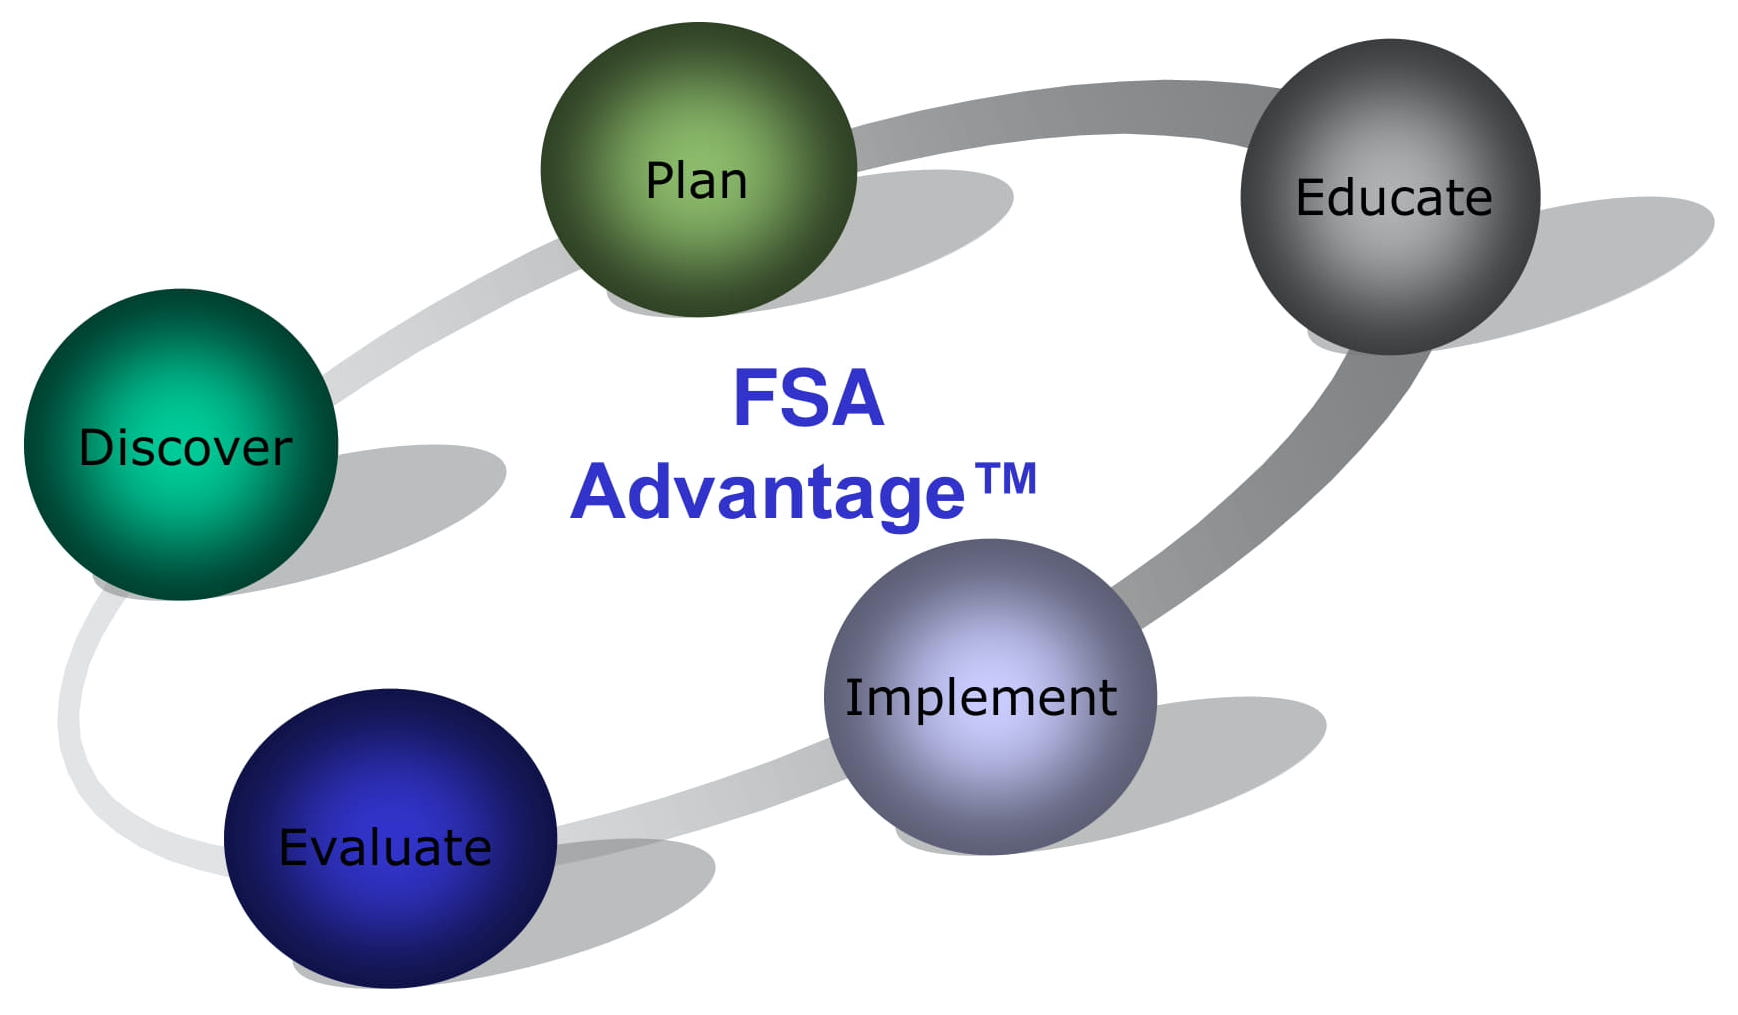 The FSA Advantage cycle continuously flowing from one step to the next.